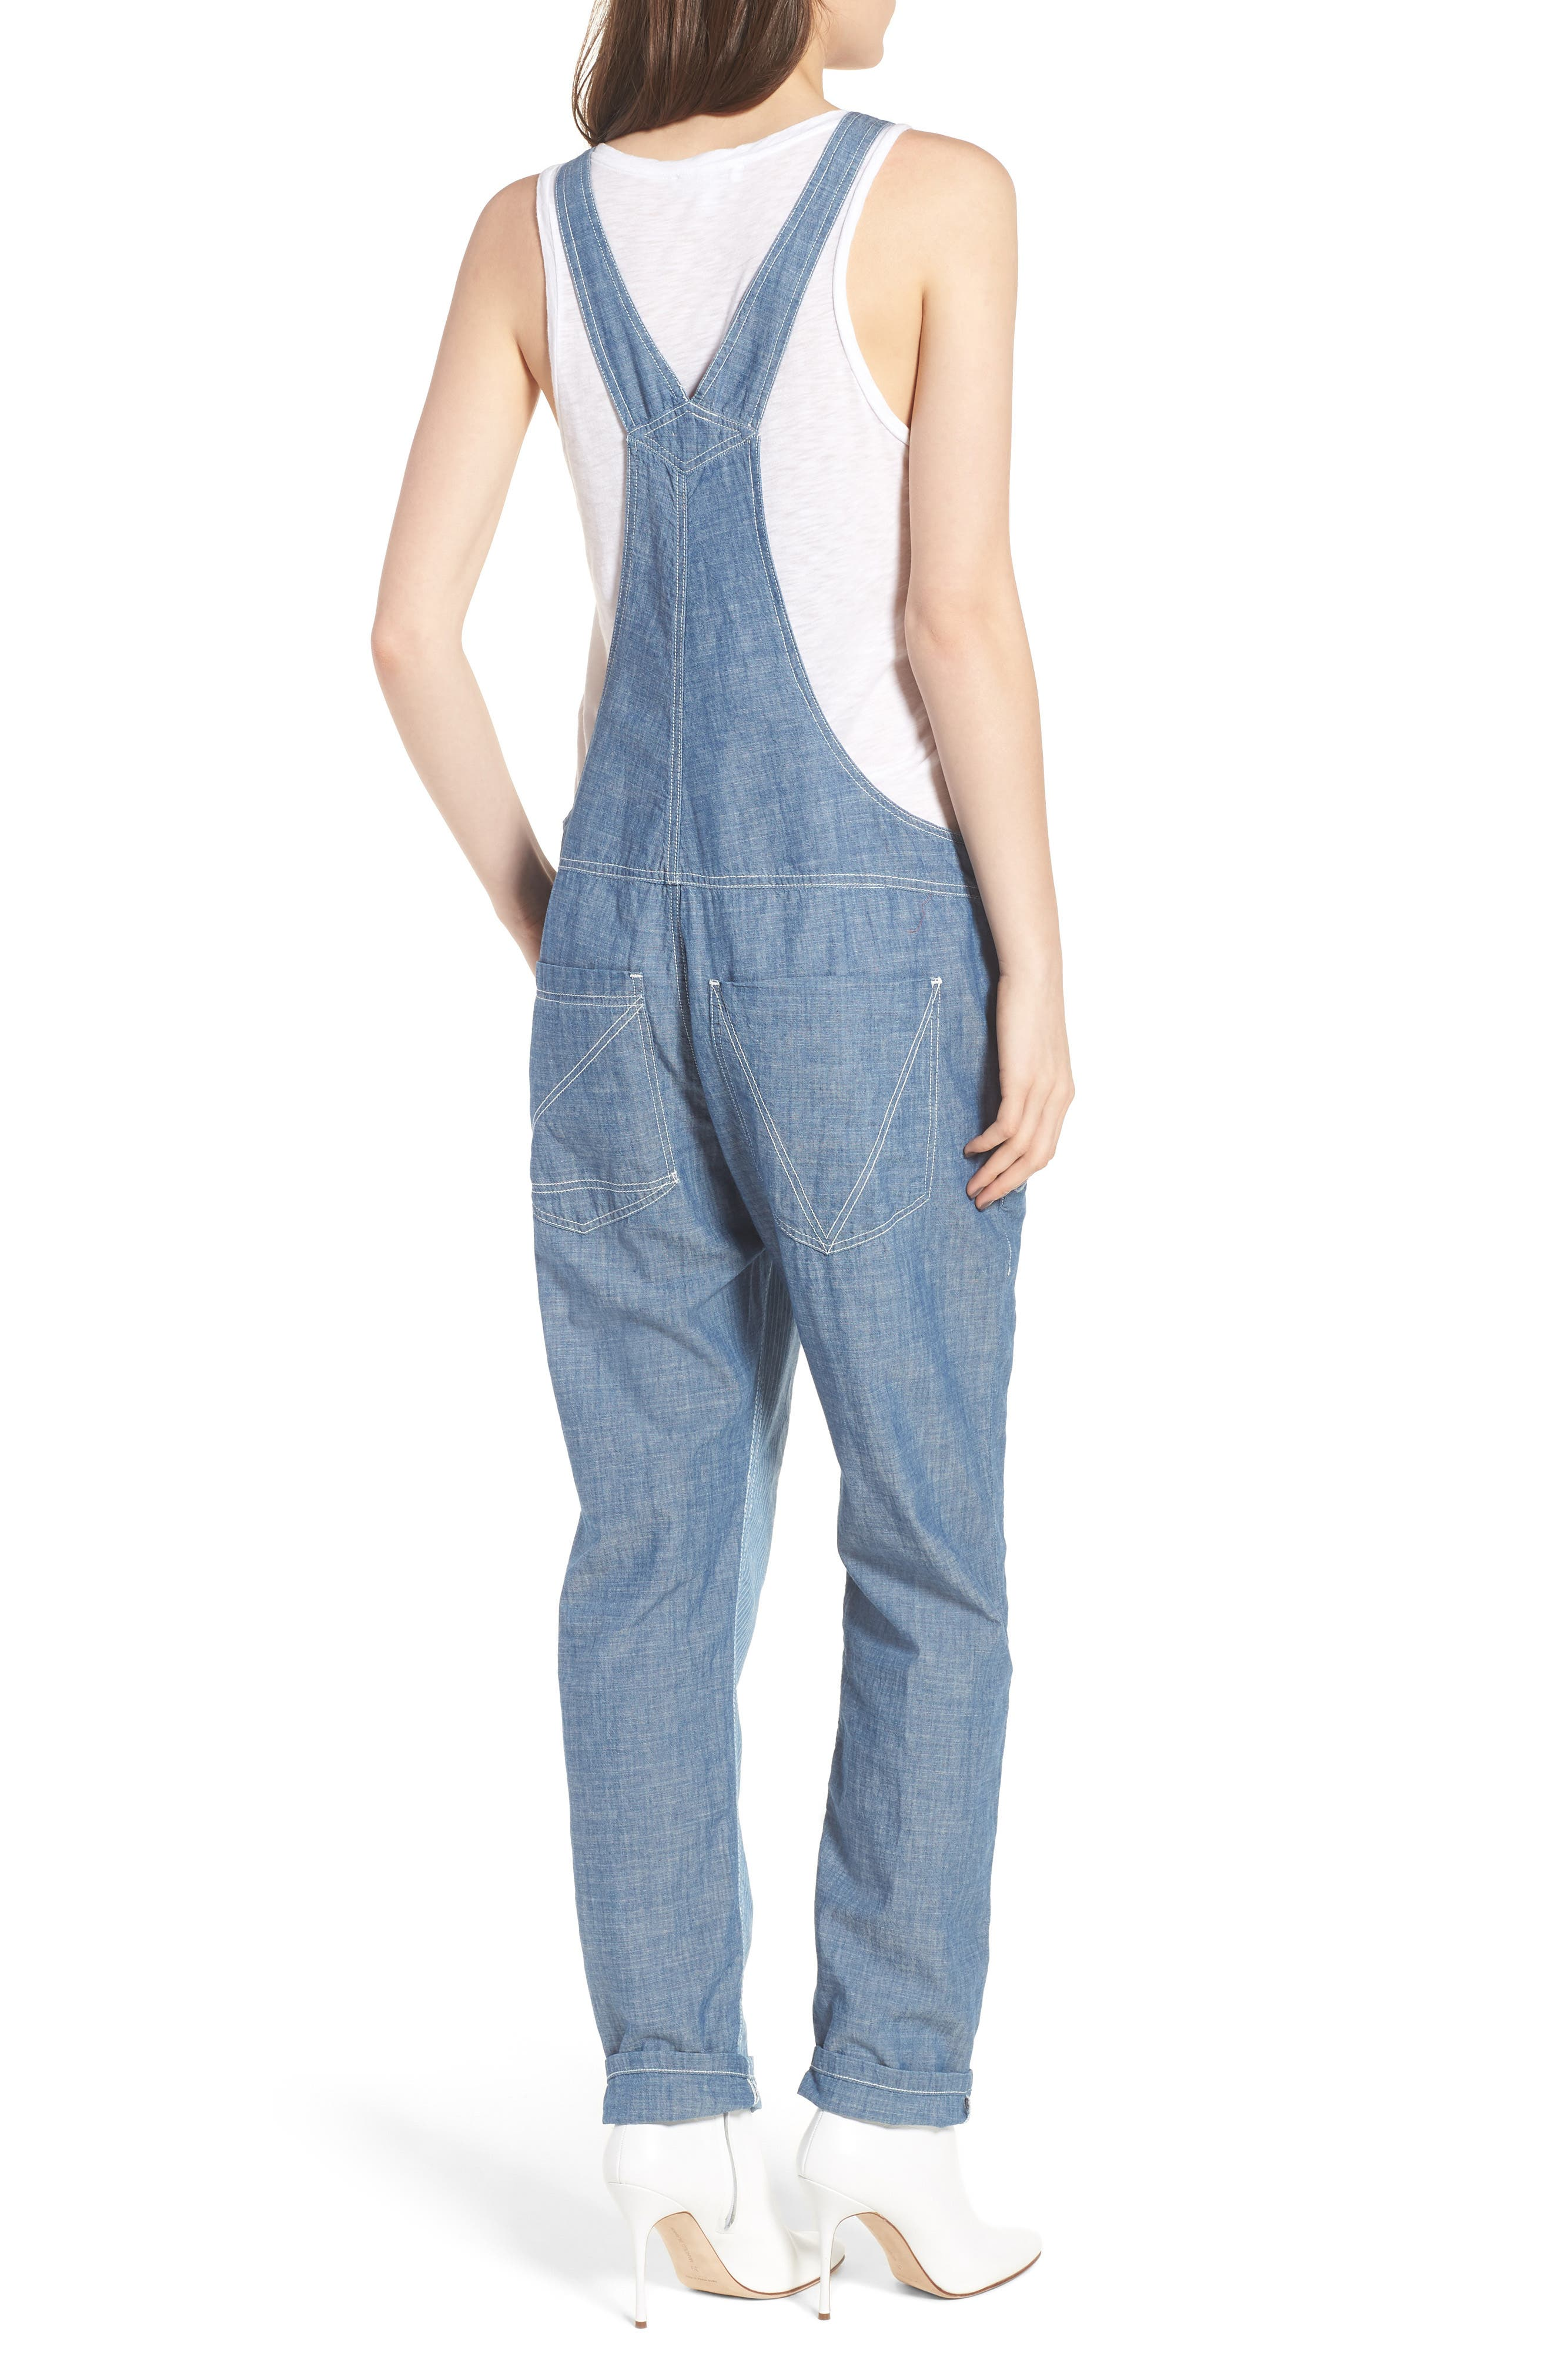 Sidney Patch Overalls,                             Alternate thumbnail 2, color,                             465